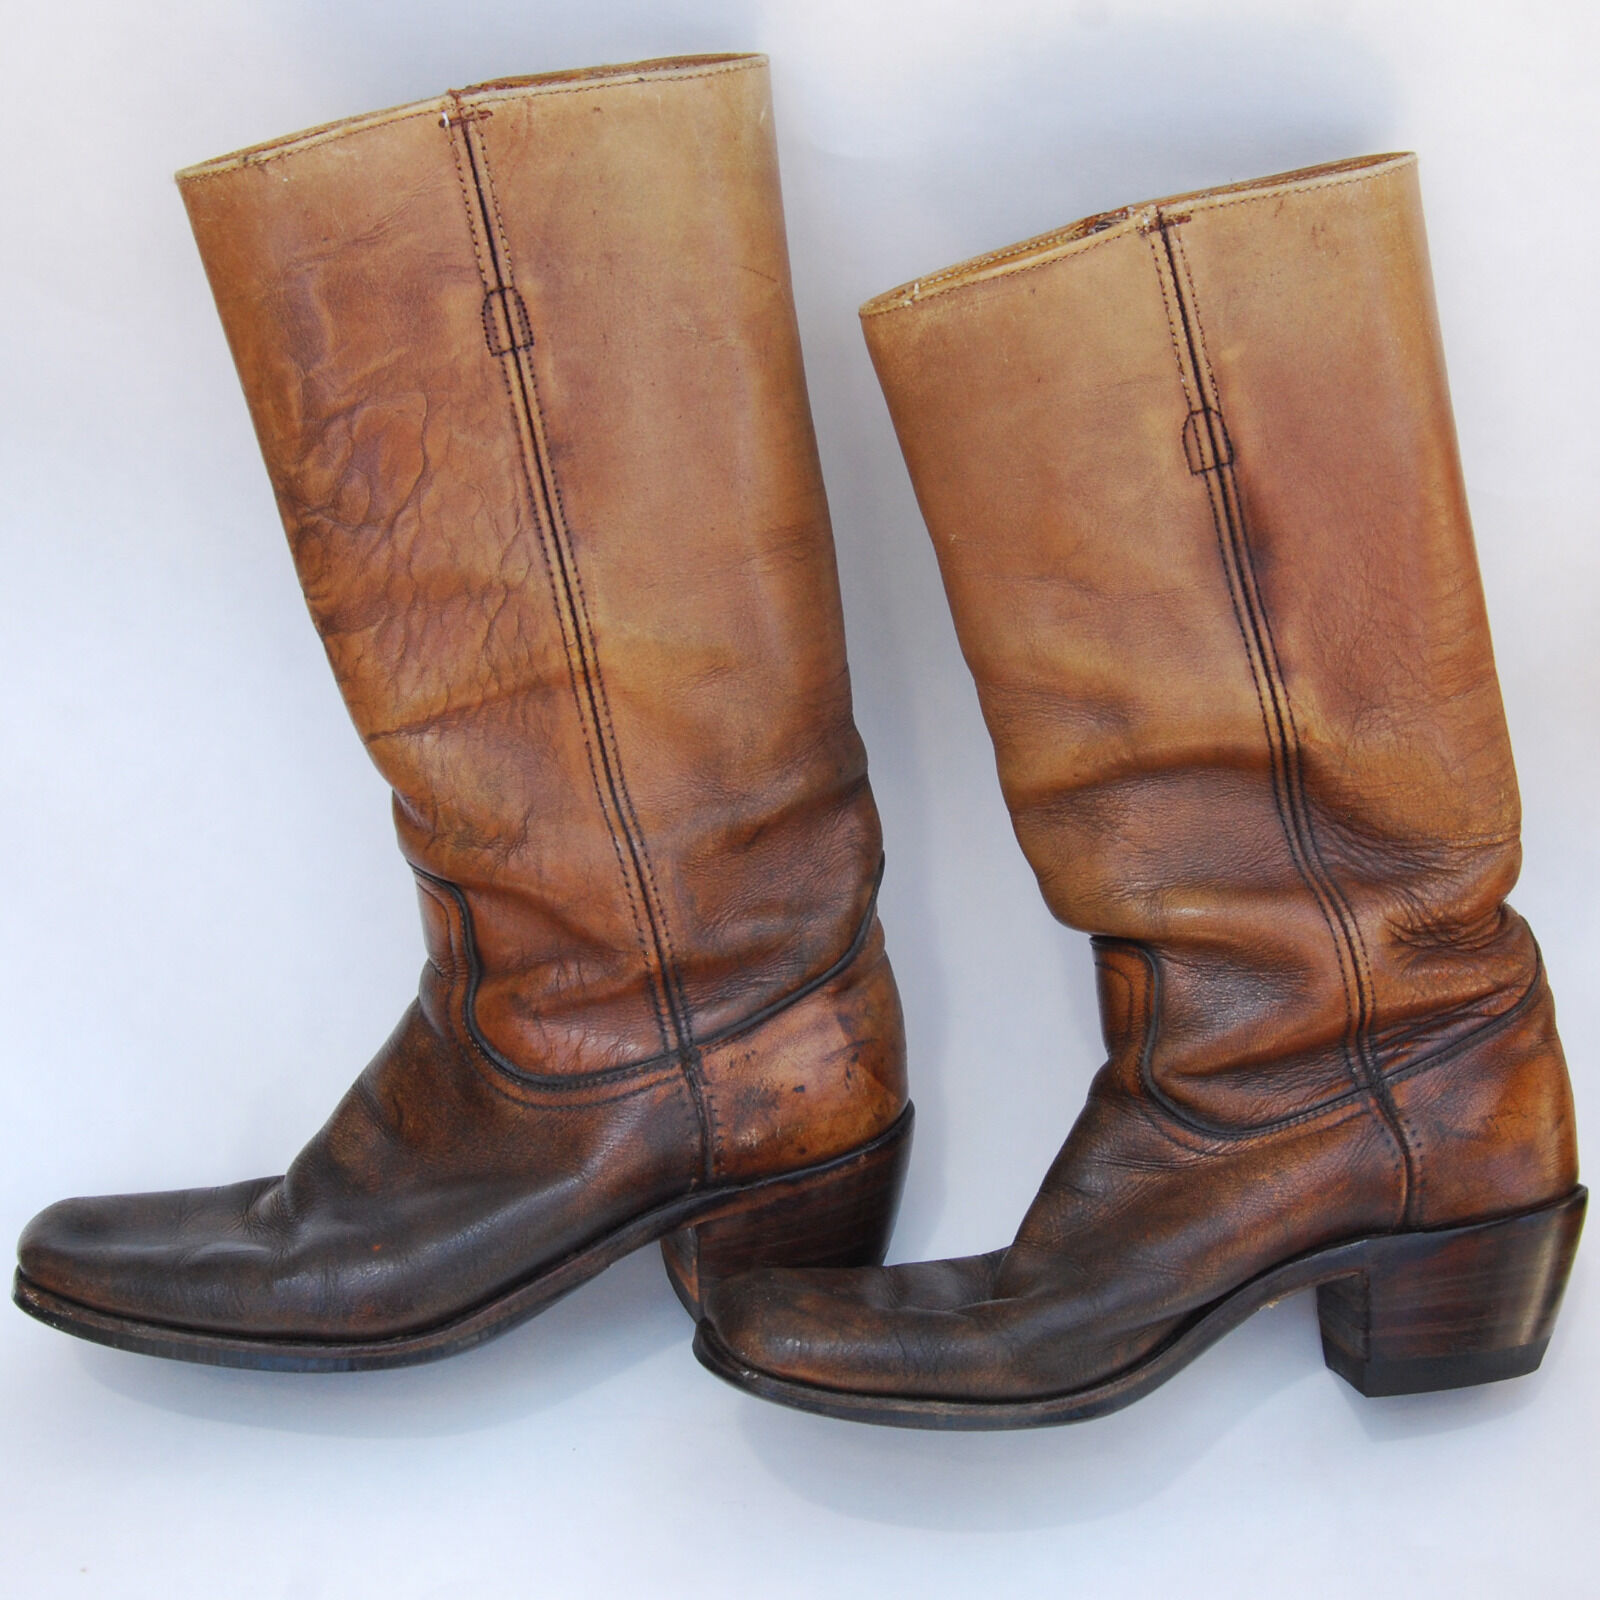 Frye Antigue Original Leather stivali Mens donna Excellent Condition